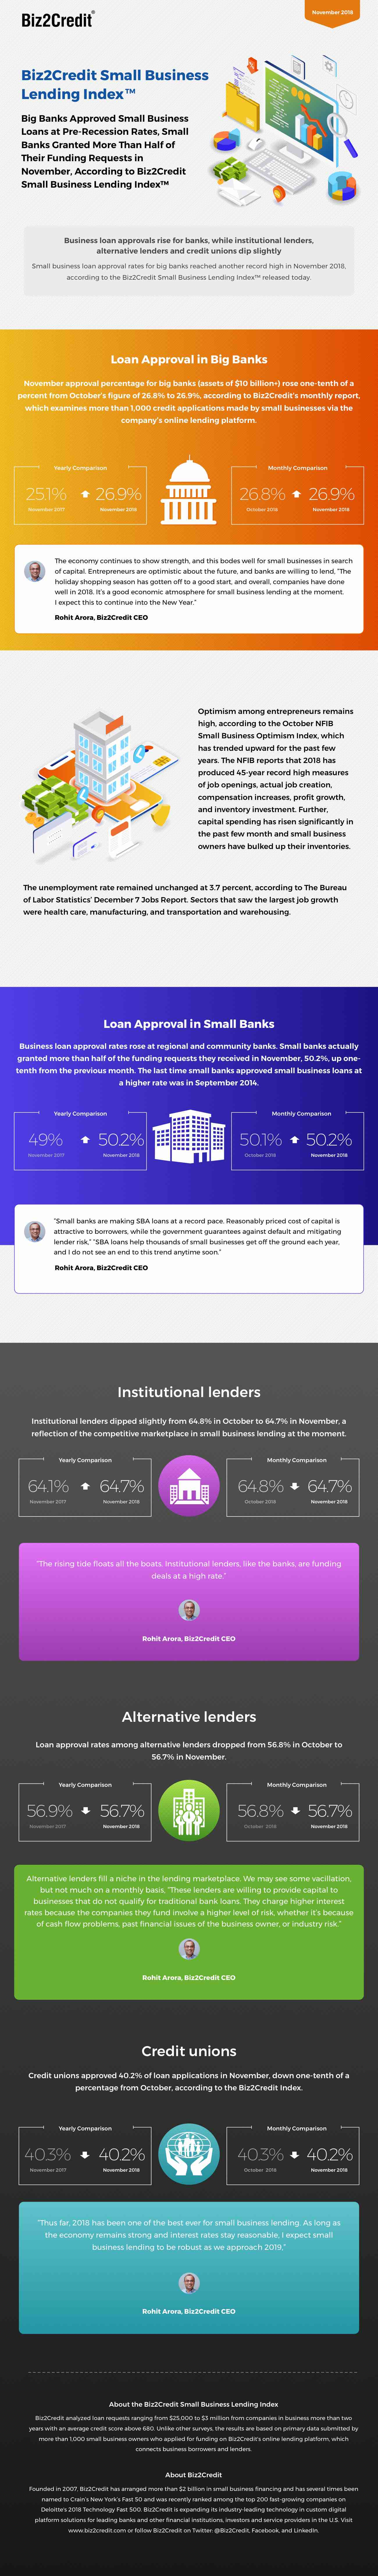 november18 Lending Index Infographic